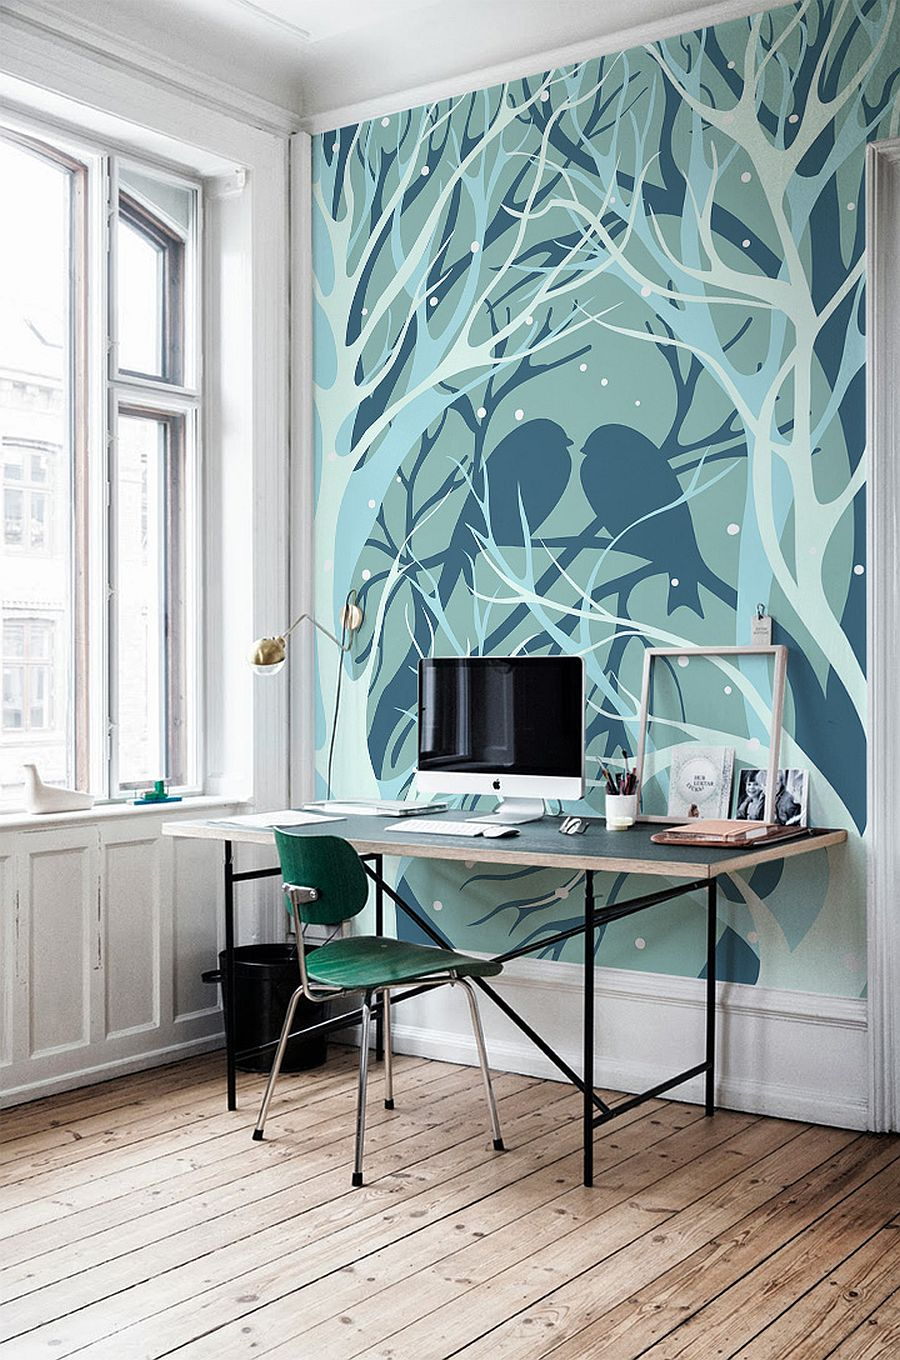 birds and trees wall mural